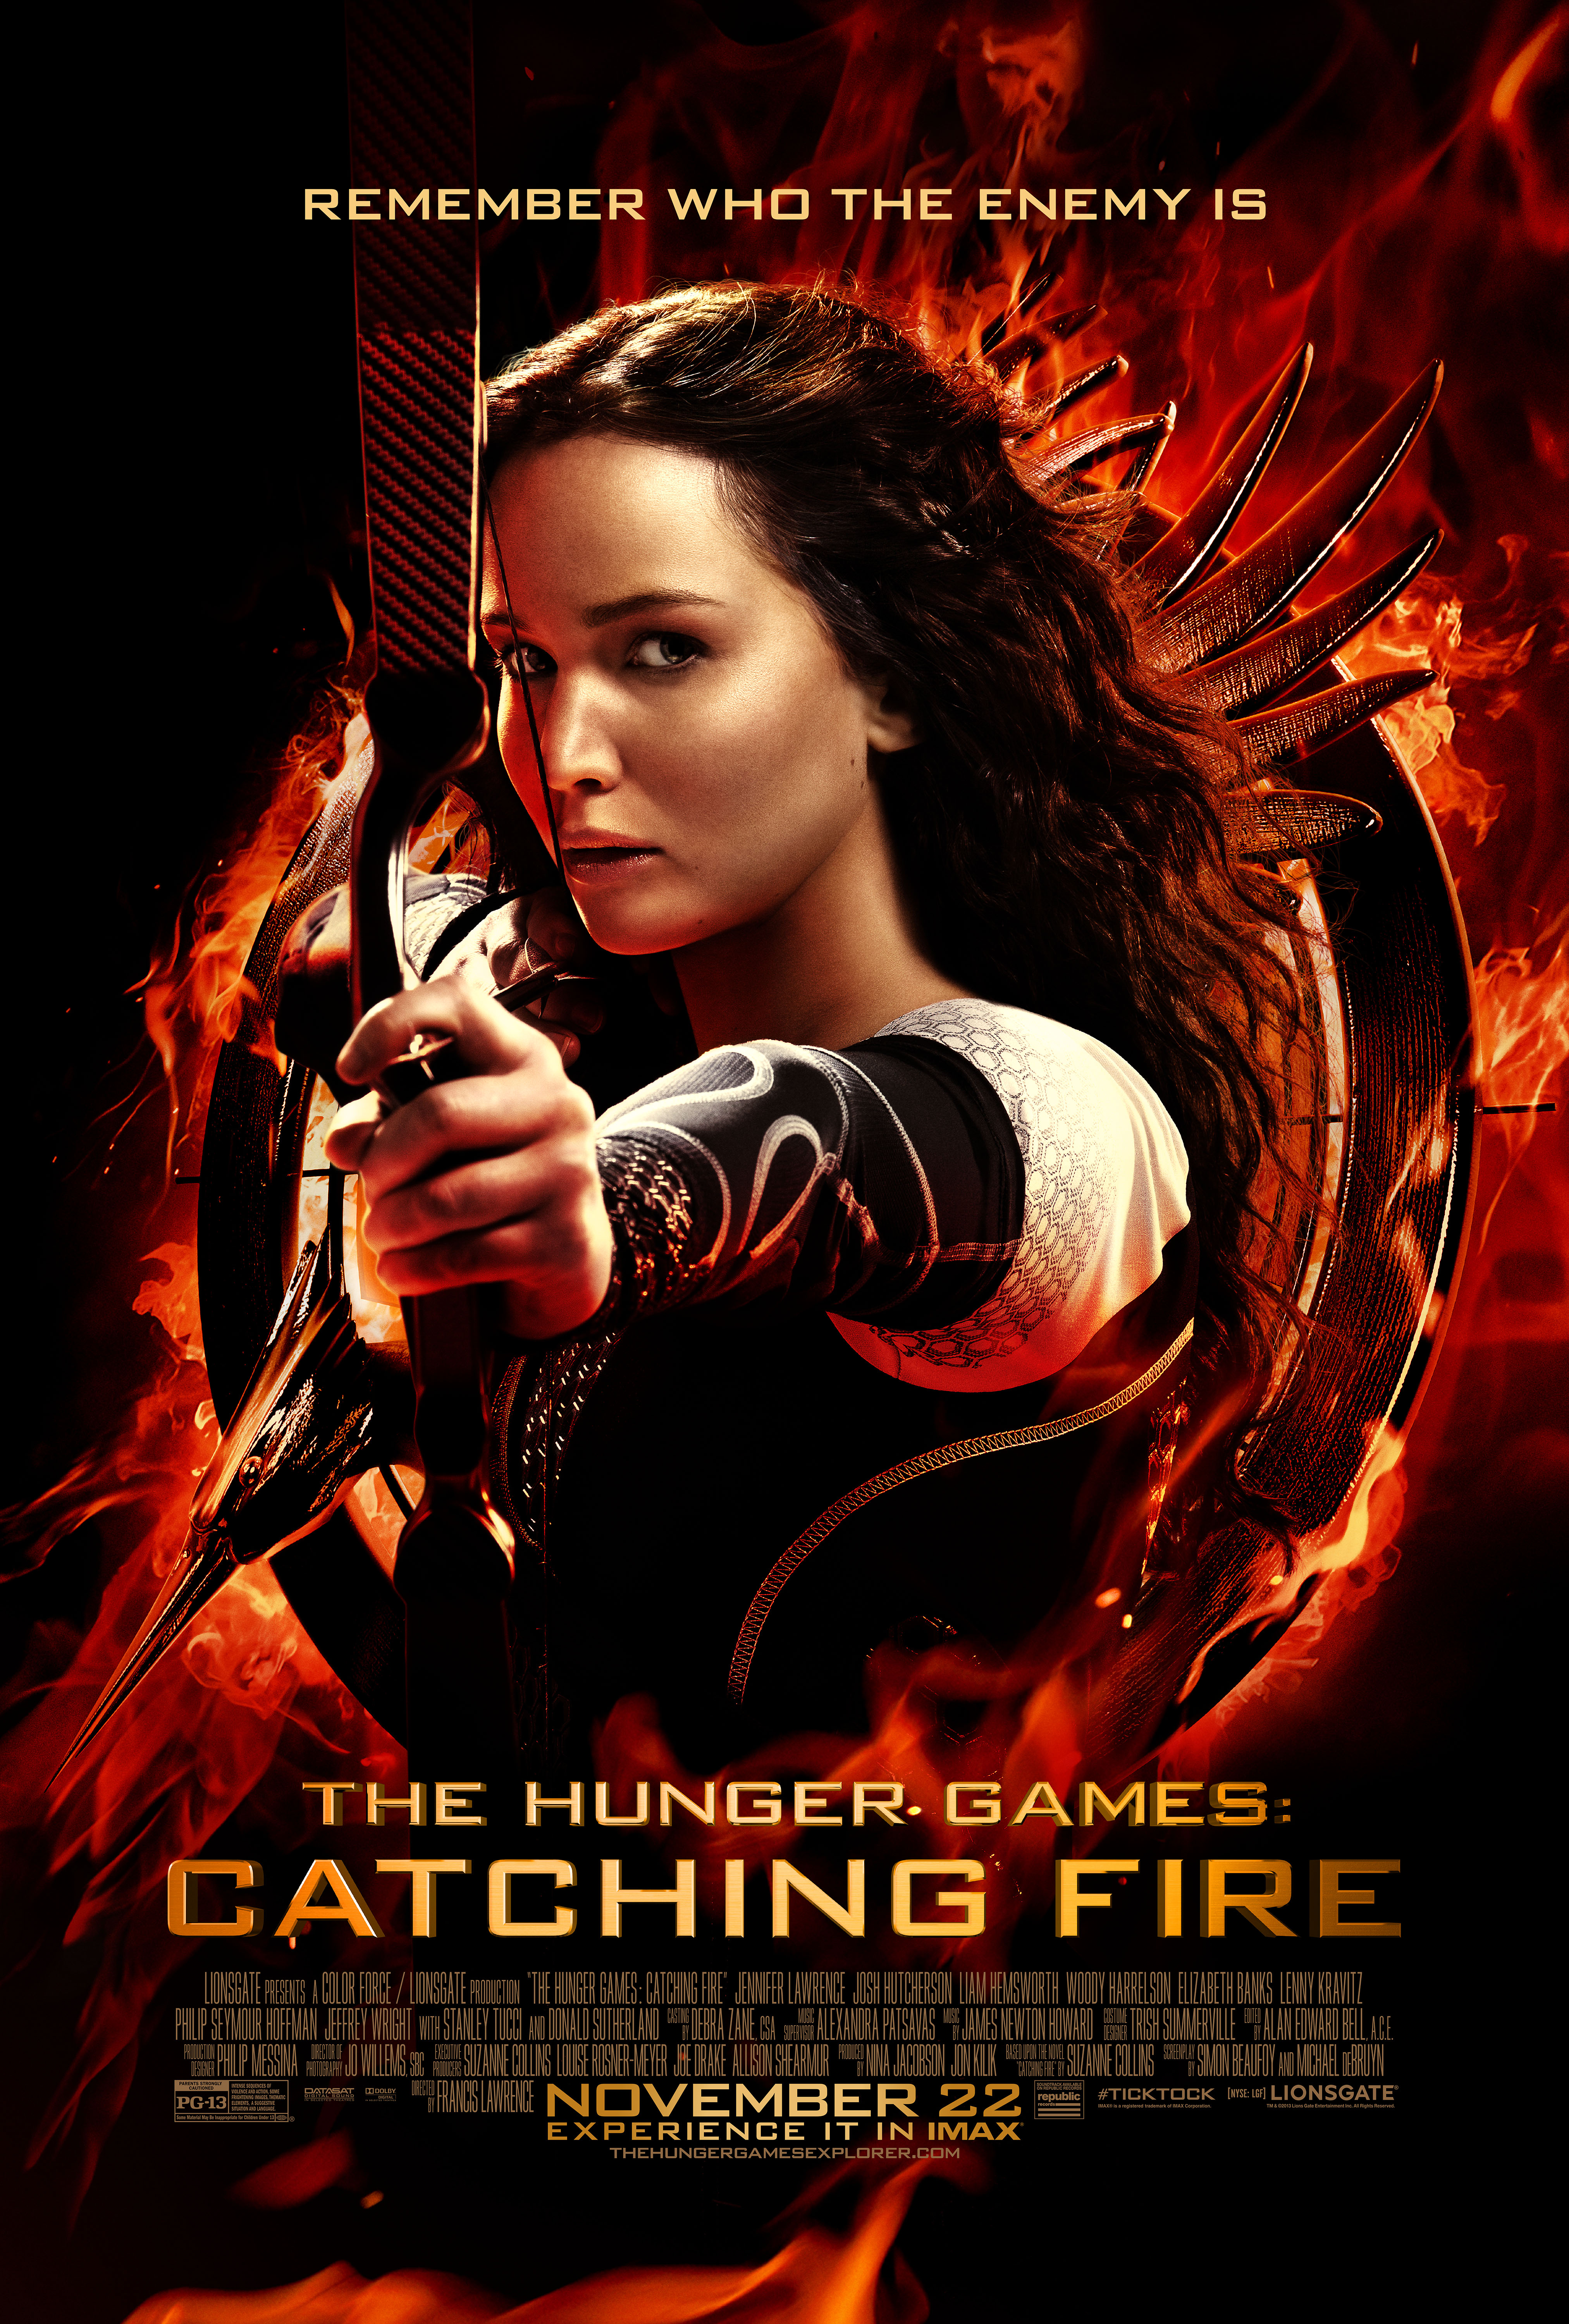 THE HUNGER GAMES: CATCHING FIRE (IN DIGITAL) (PG-13)